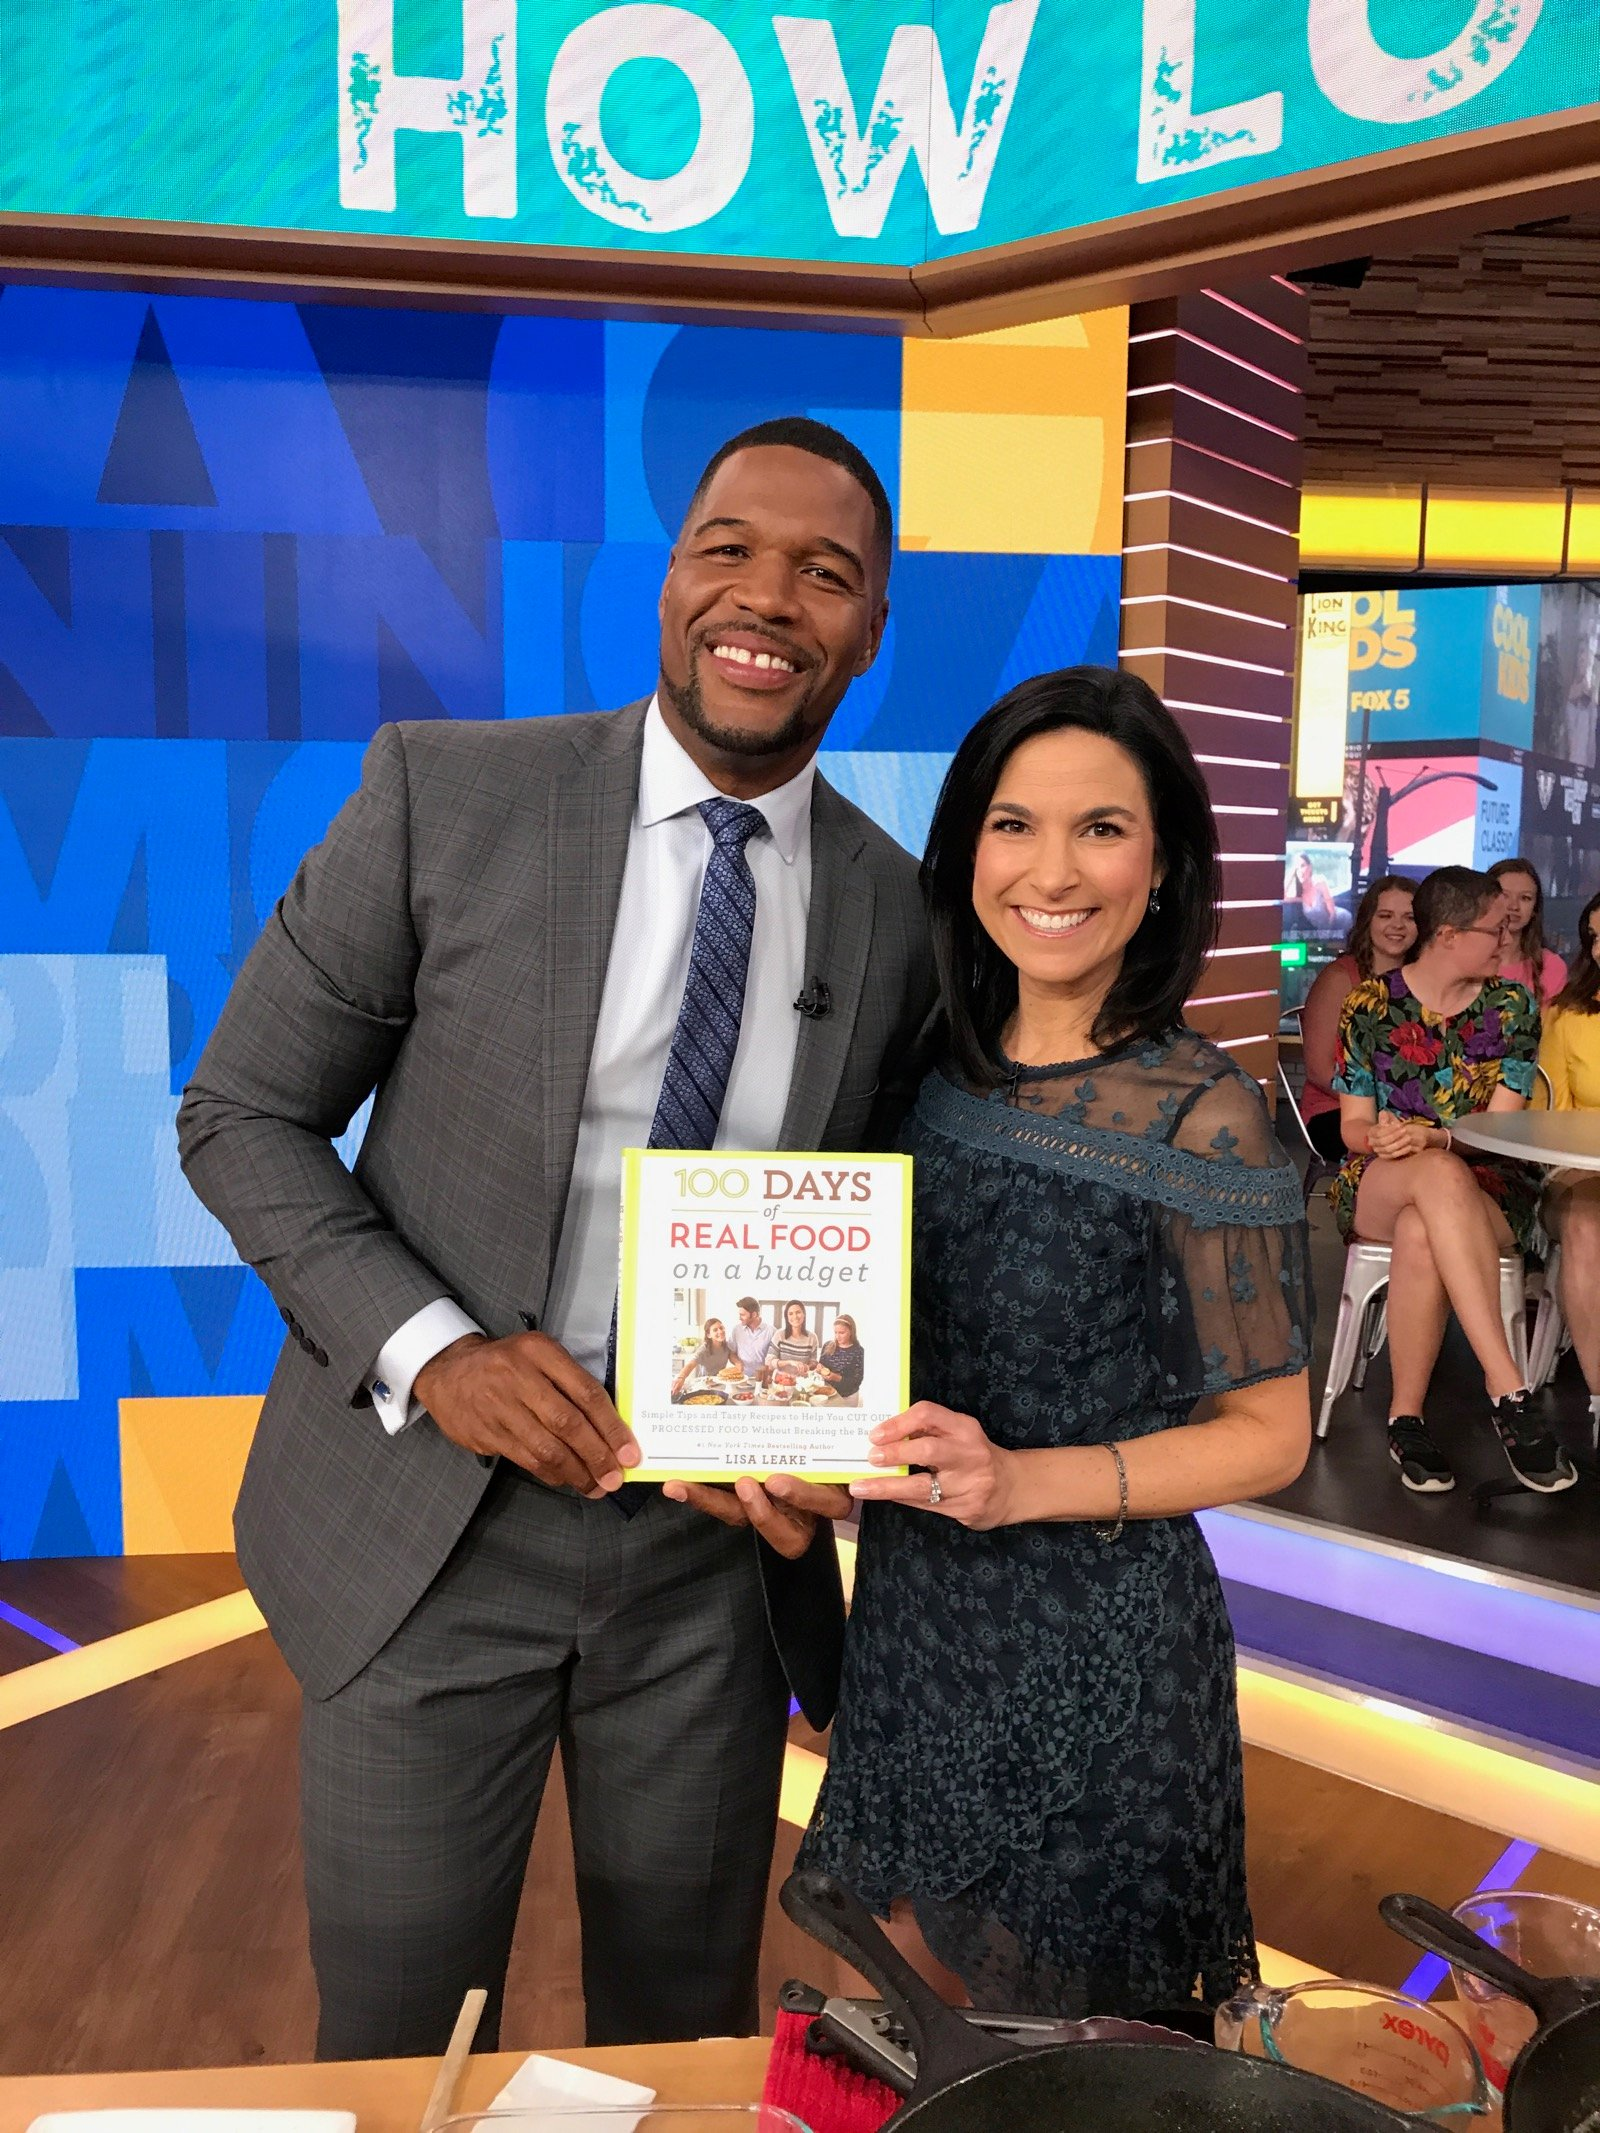 Behind the Scenes at GMA on 100 Days of Real Food